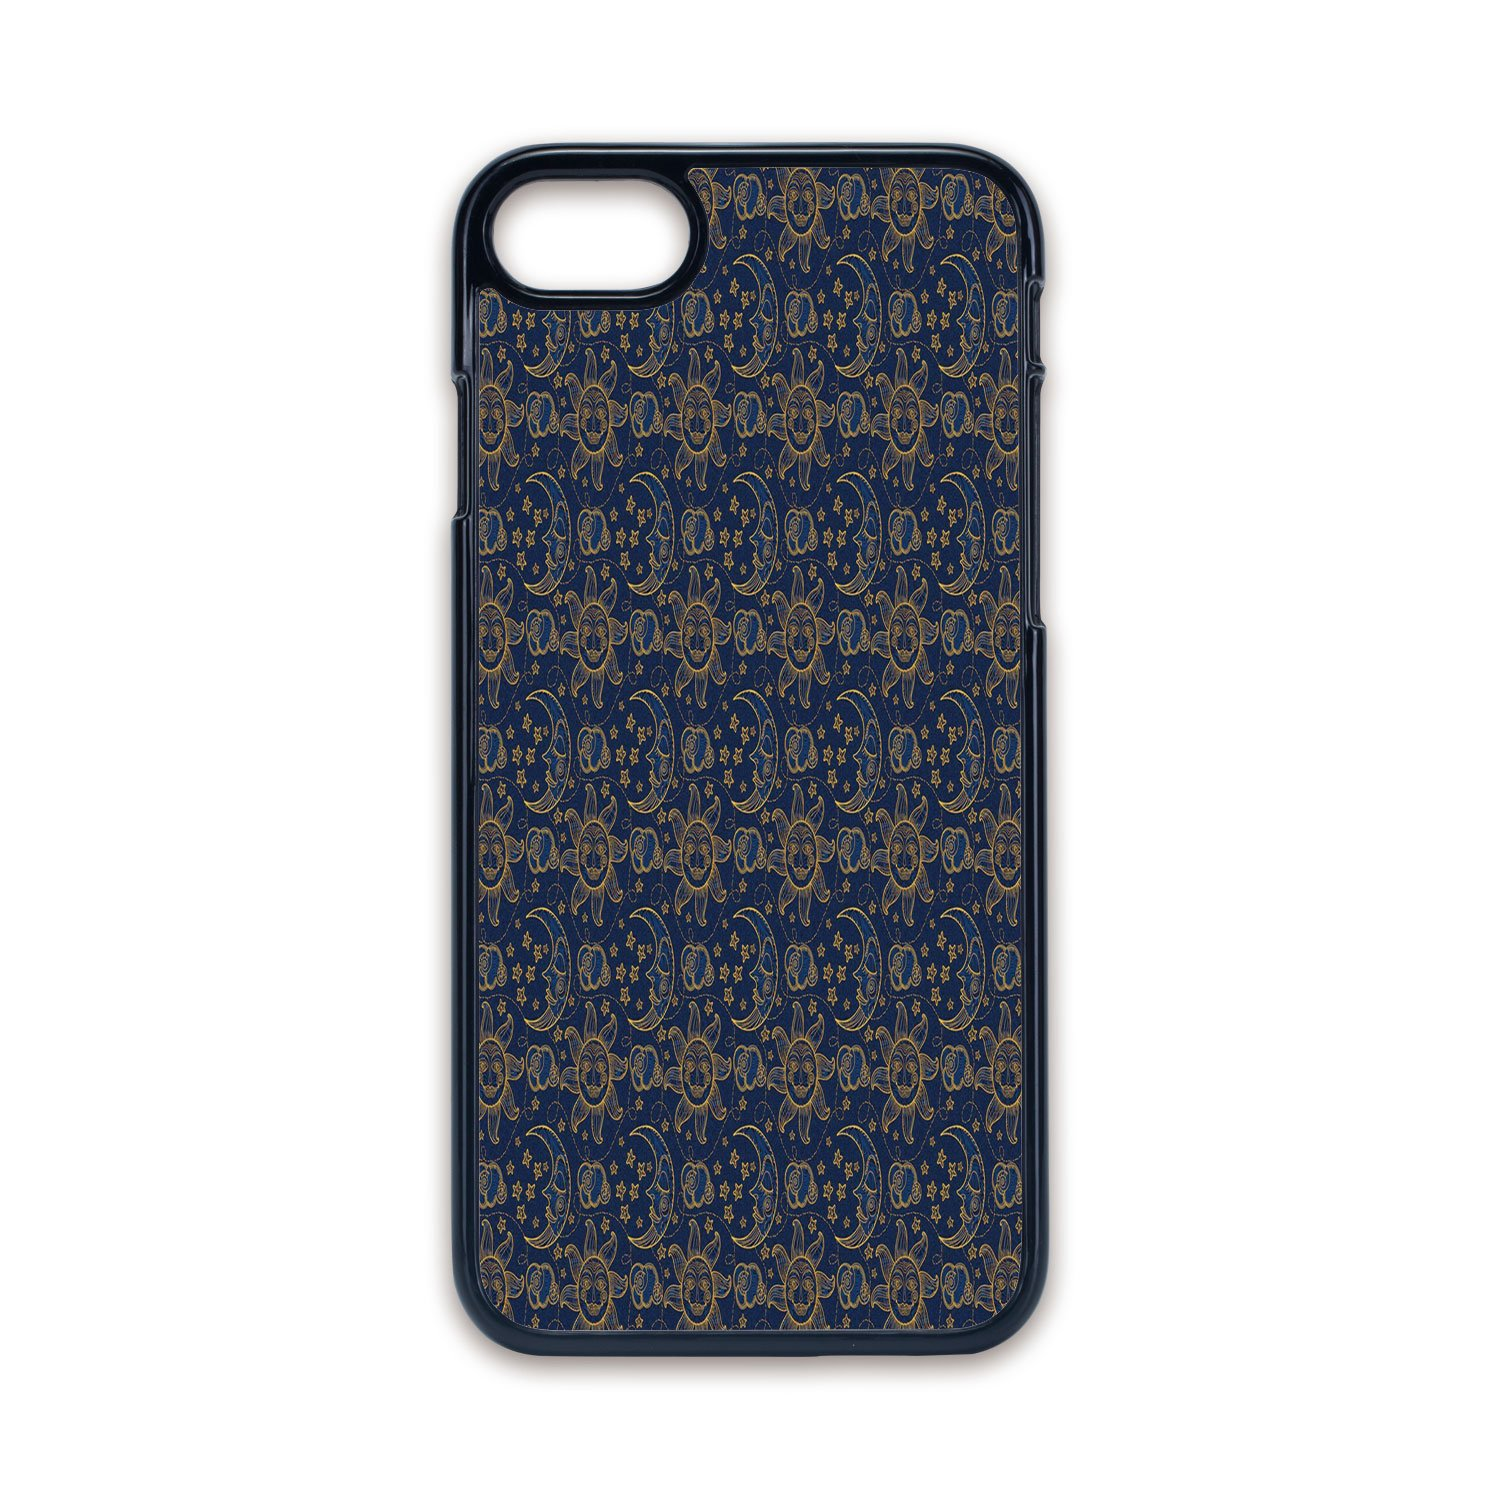 Amazon Com Phone Case Compatible With Iphone7 Iphone8 Black Edge Fashion Personality Sun Doodle Style Star Motif With Stripes And Curved Lines Vintage Hand Drawn Sky Decorative Navy Blue Marigold Hard Plastic Ph Cell Phones Accessories